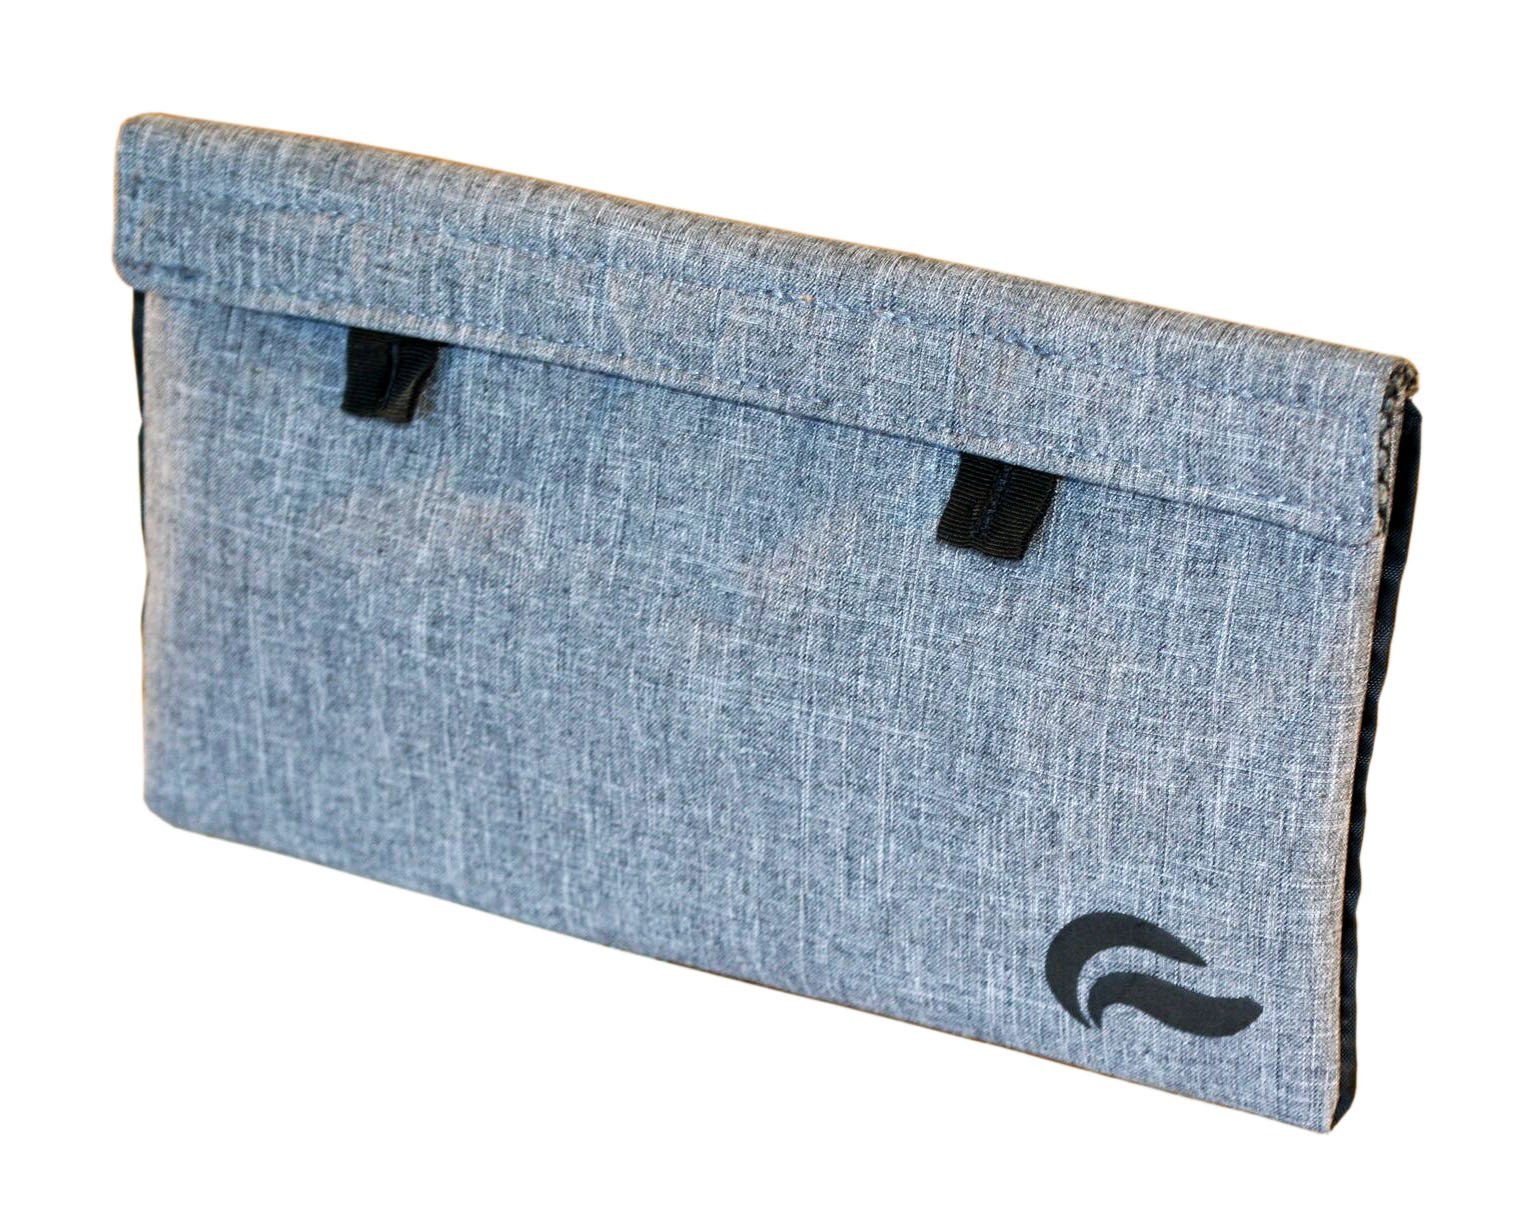 Skunk Lifestyle edition Mr Slick Smell Proof Bag 11''x6'' Gray